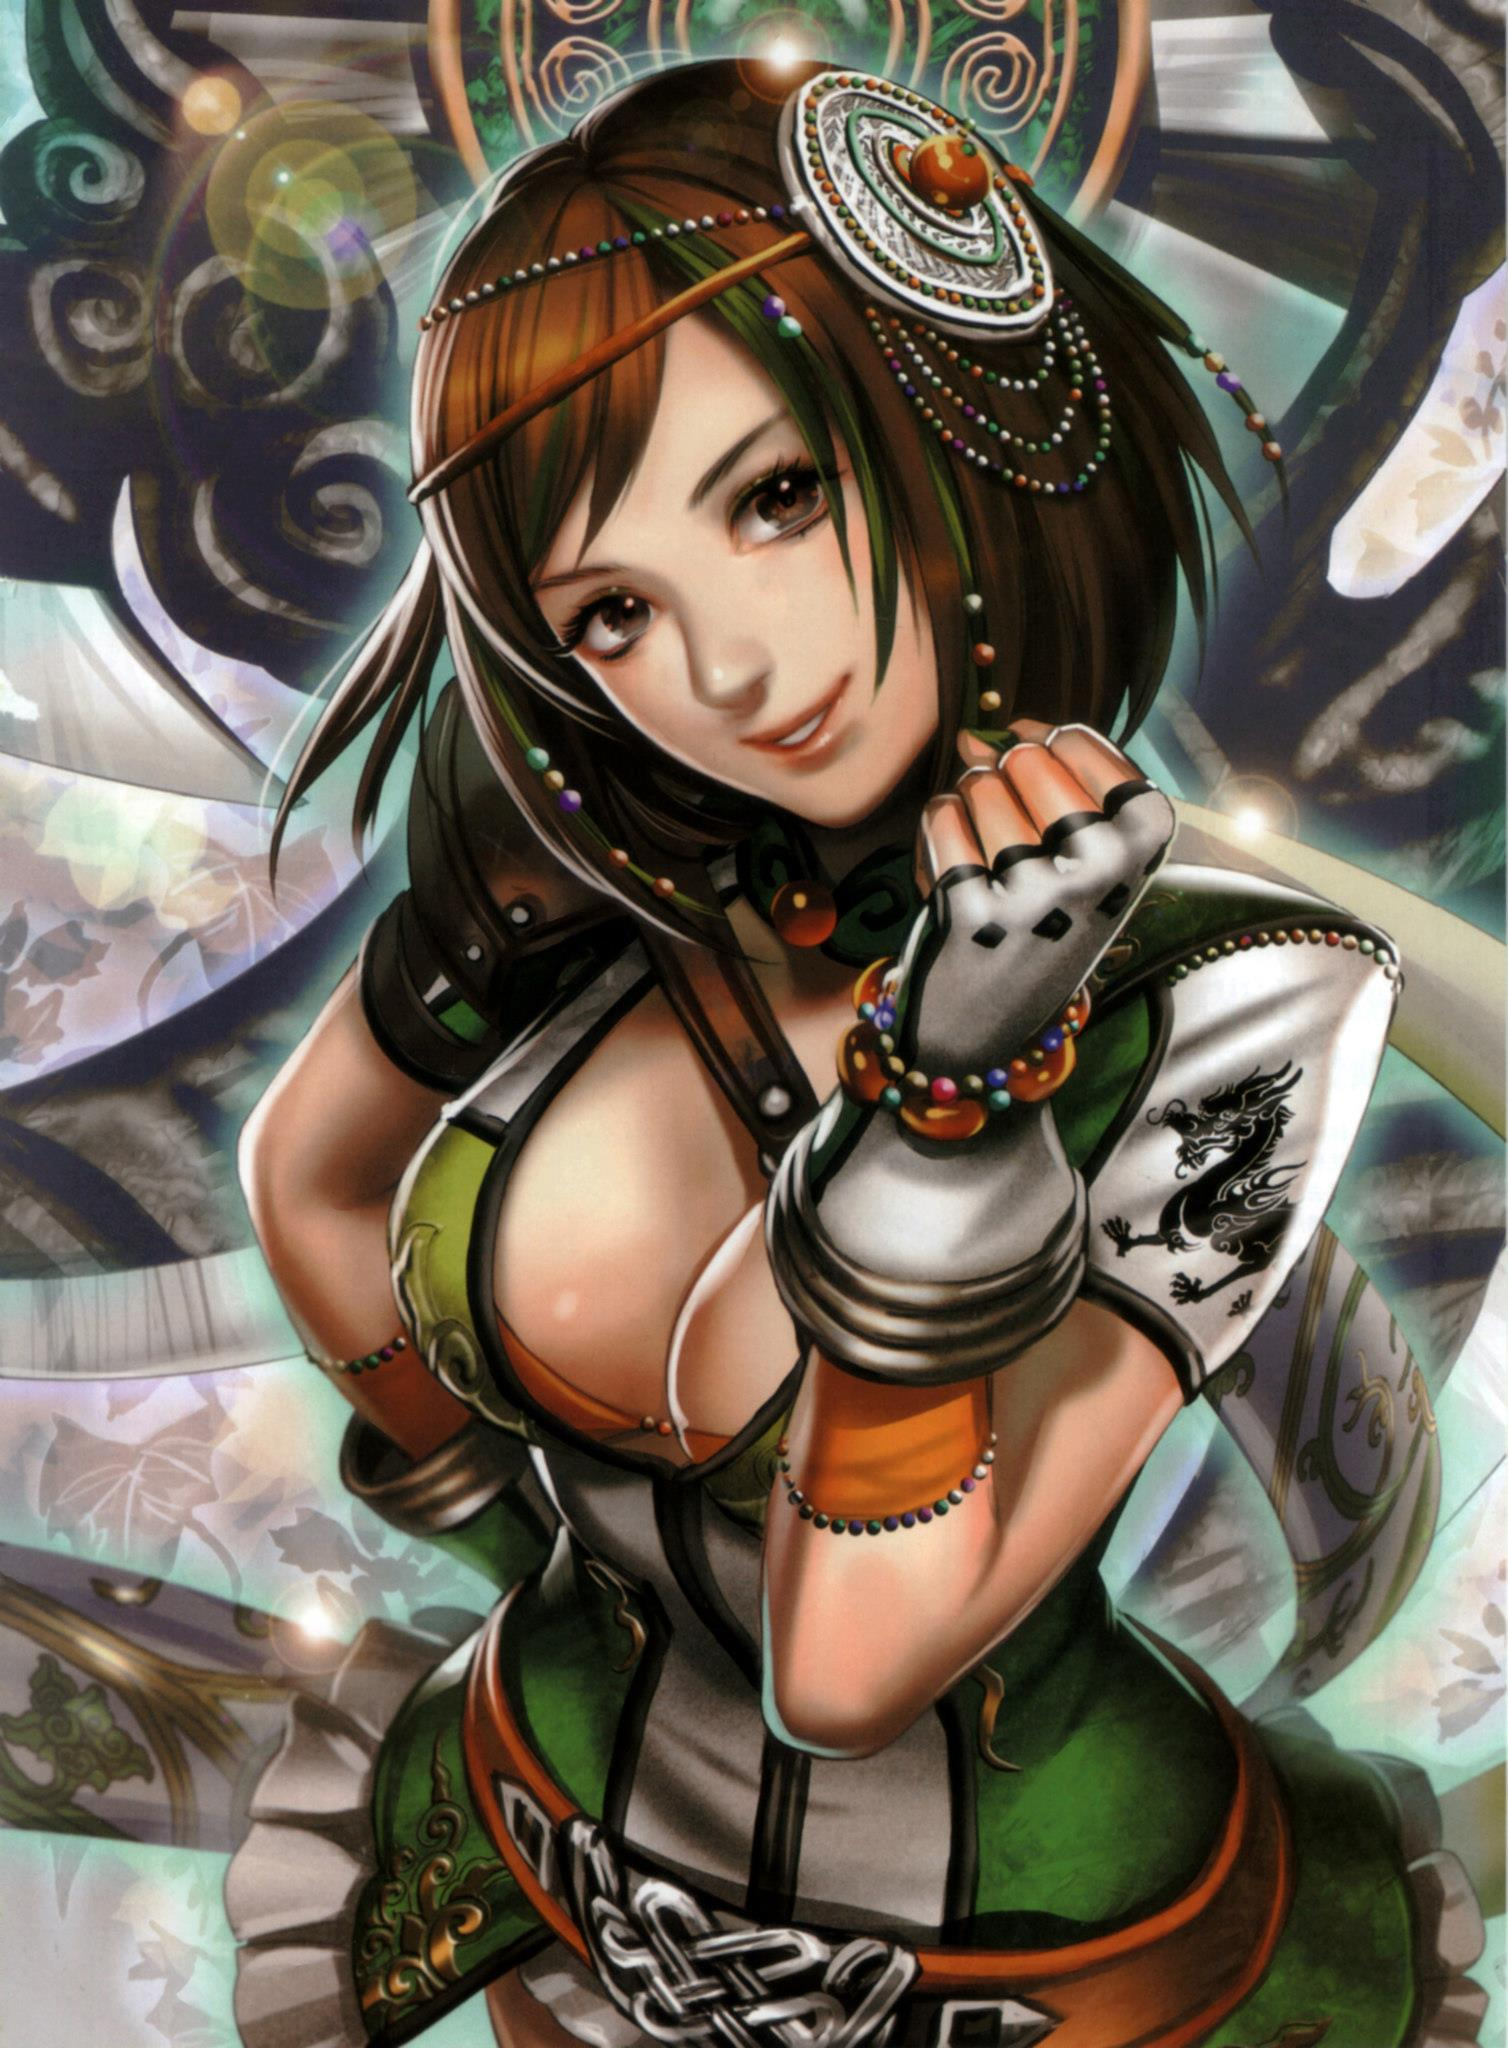 Dynasty warriors hentai doujin nude scene